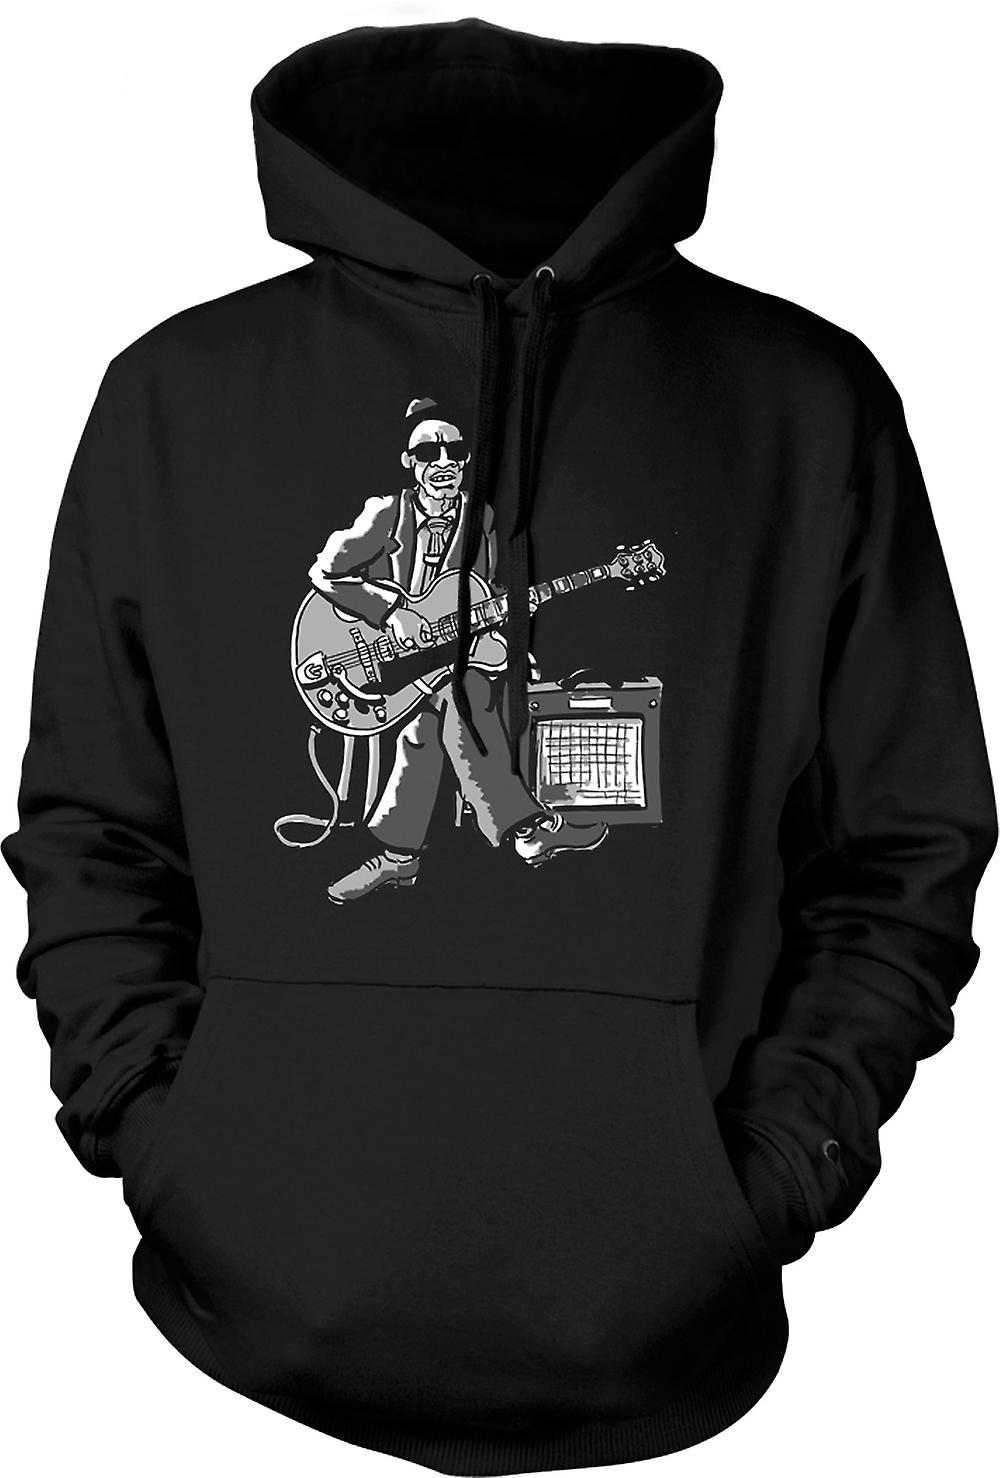 Mens Hoodie - Old Blues Guitarist With Amp - Music